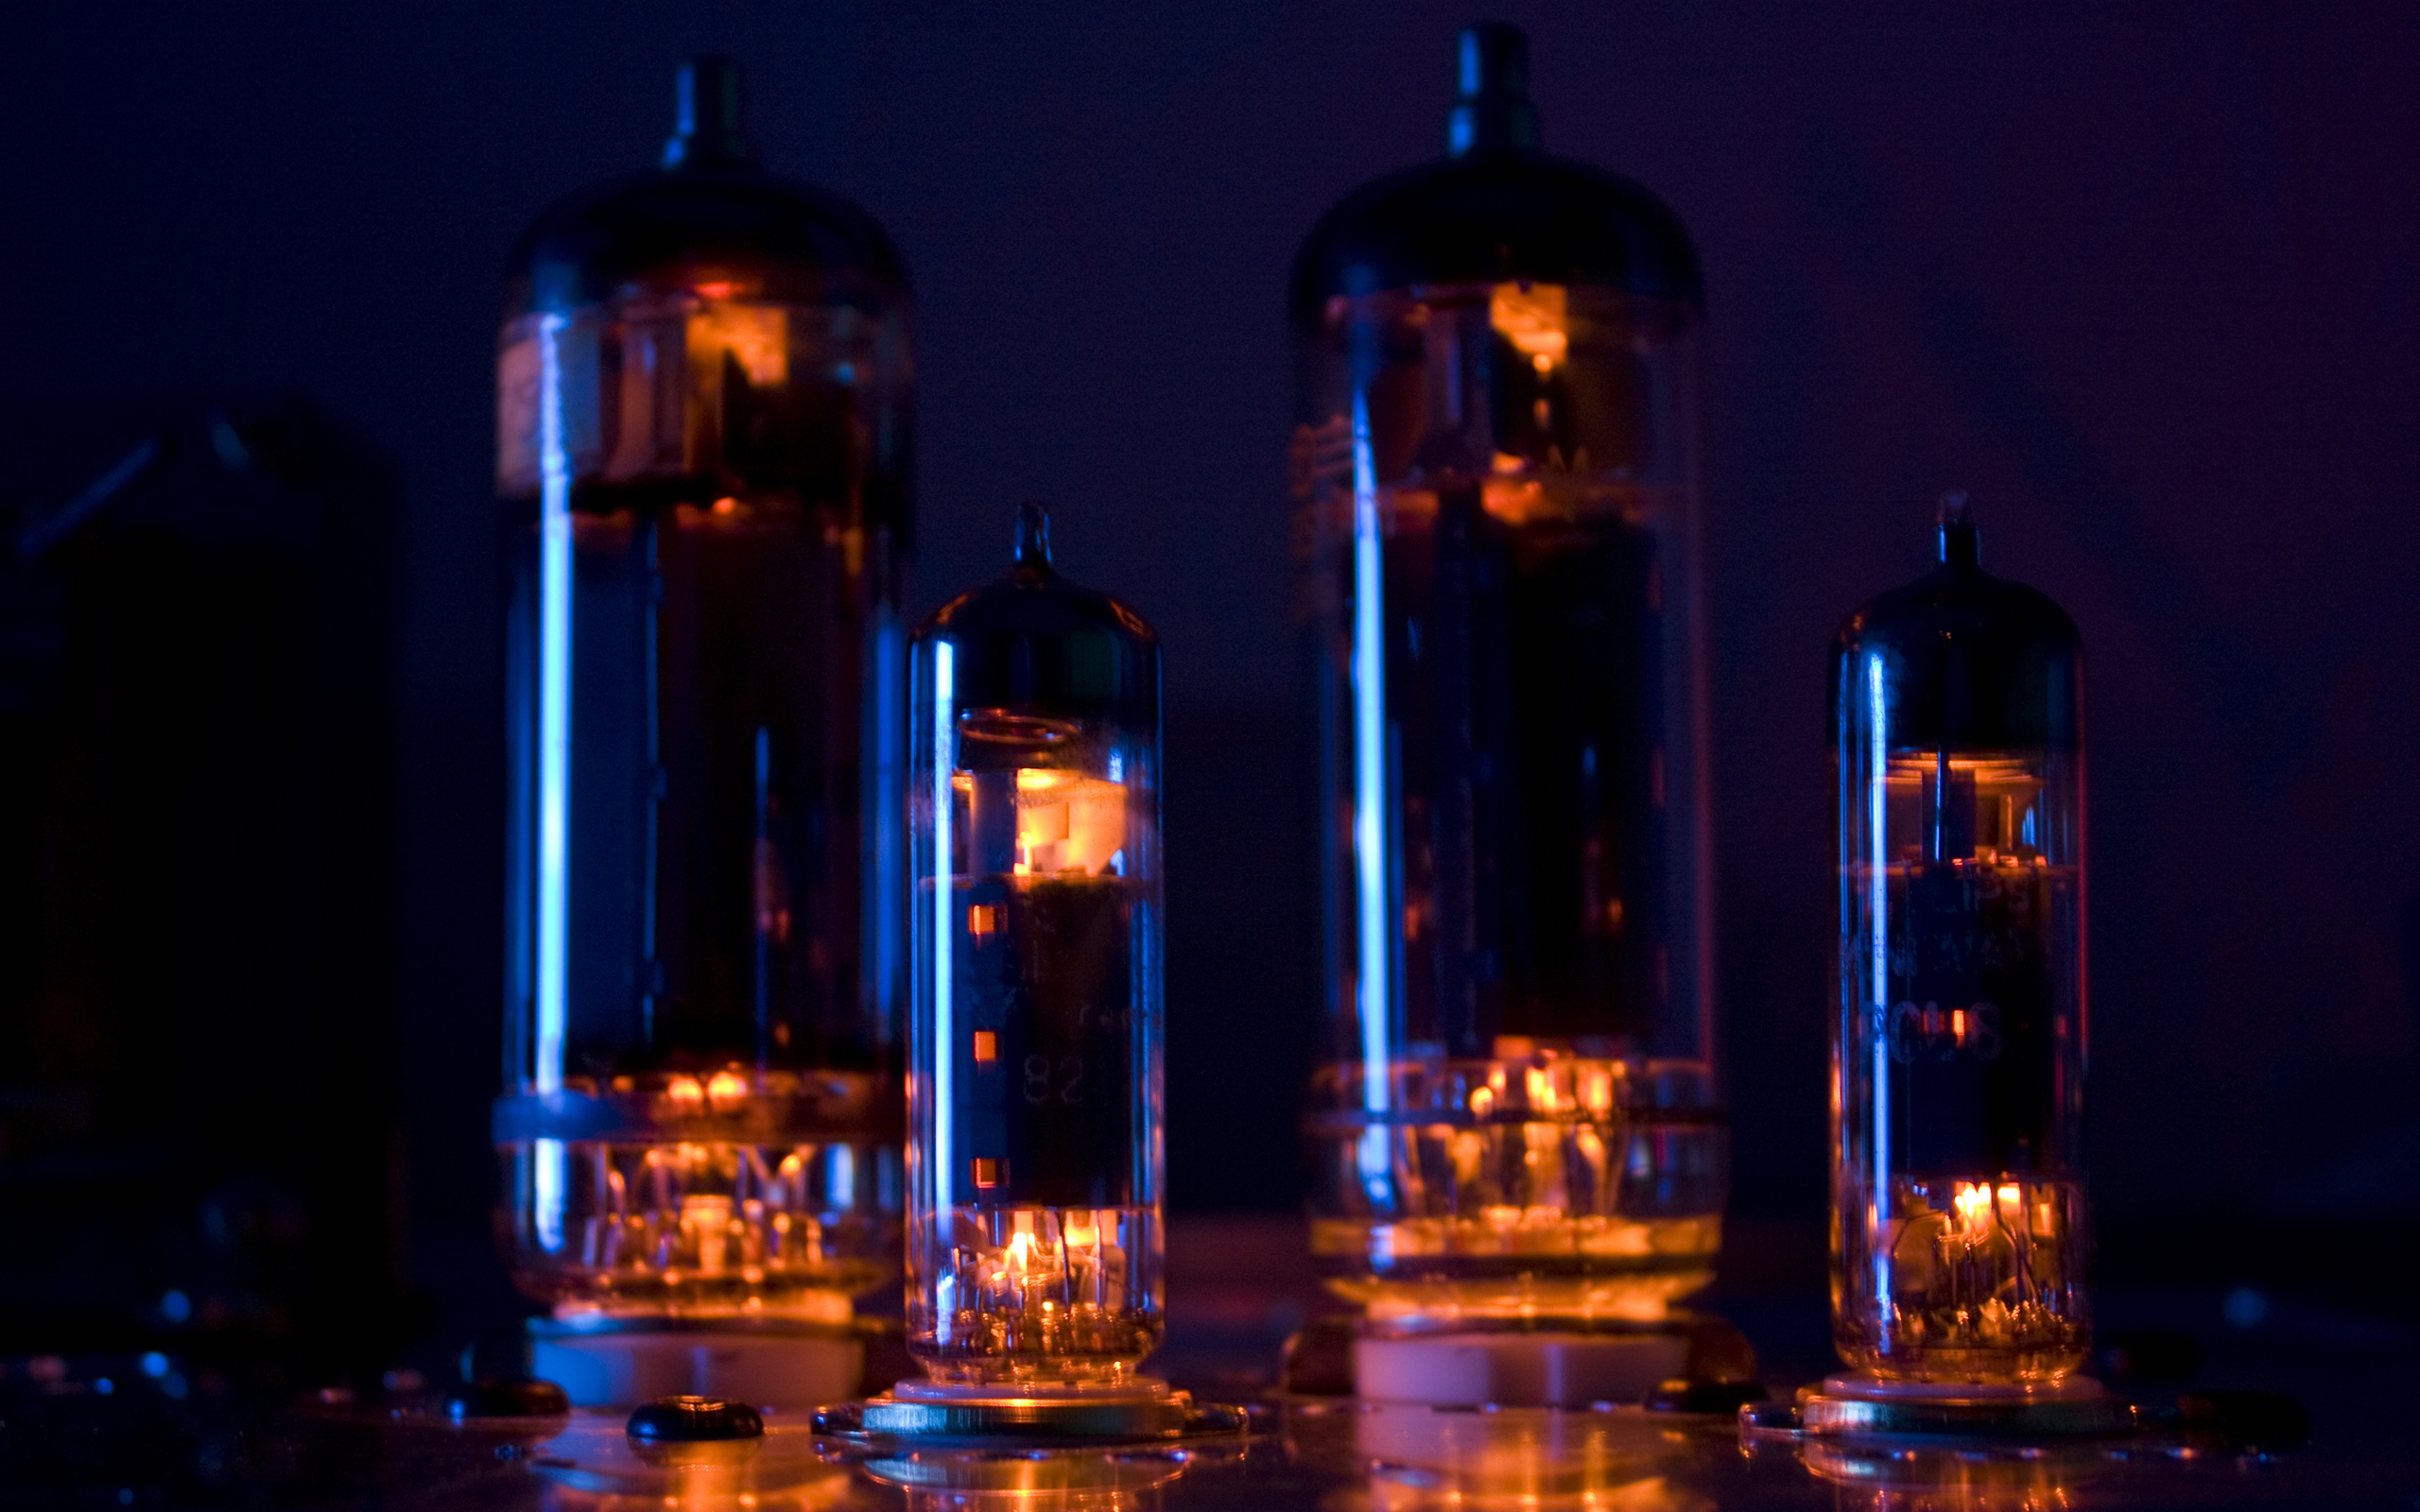 Hd Tube 1 Vacuum Tube Hd Wallpapers Background Images